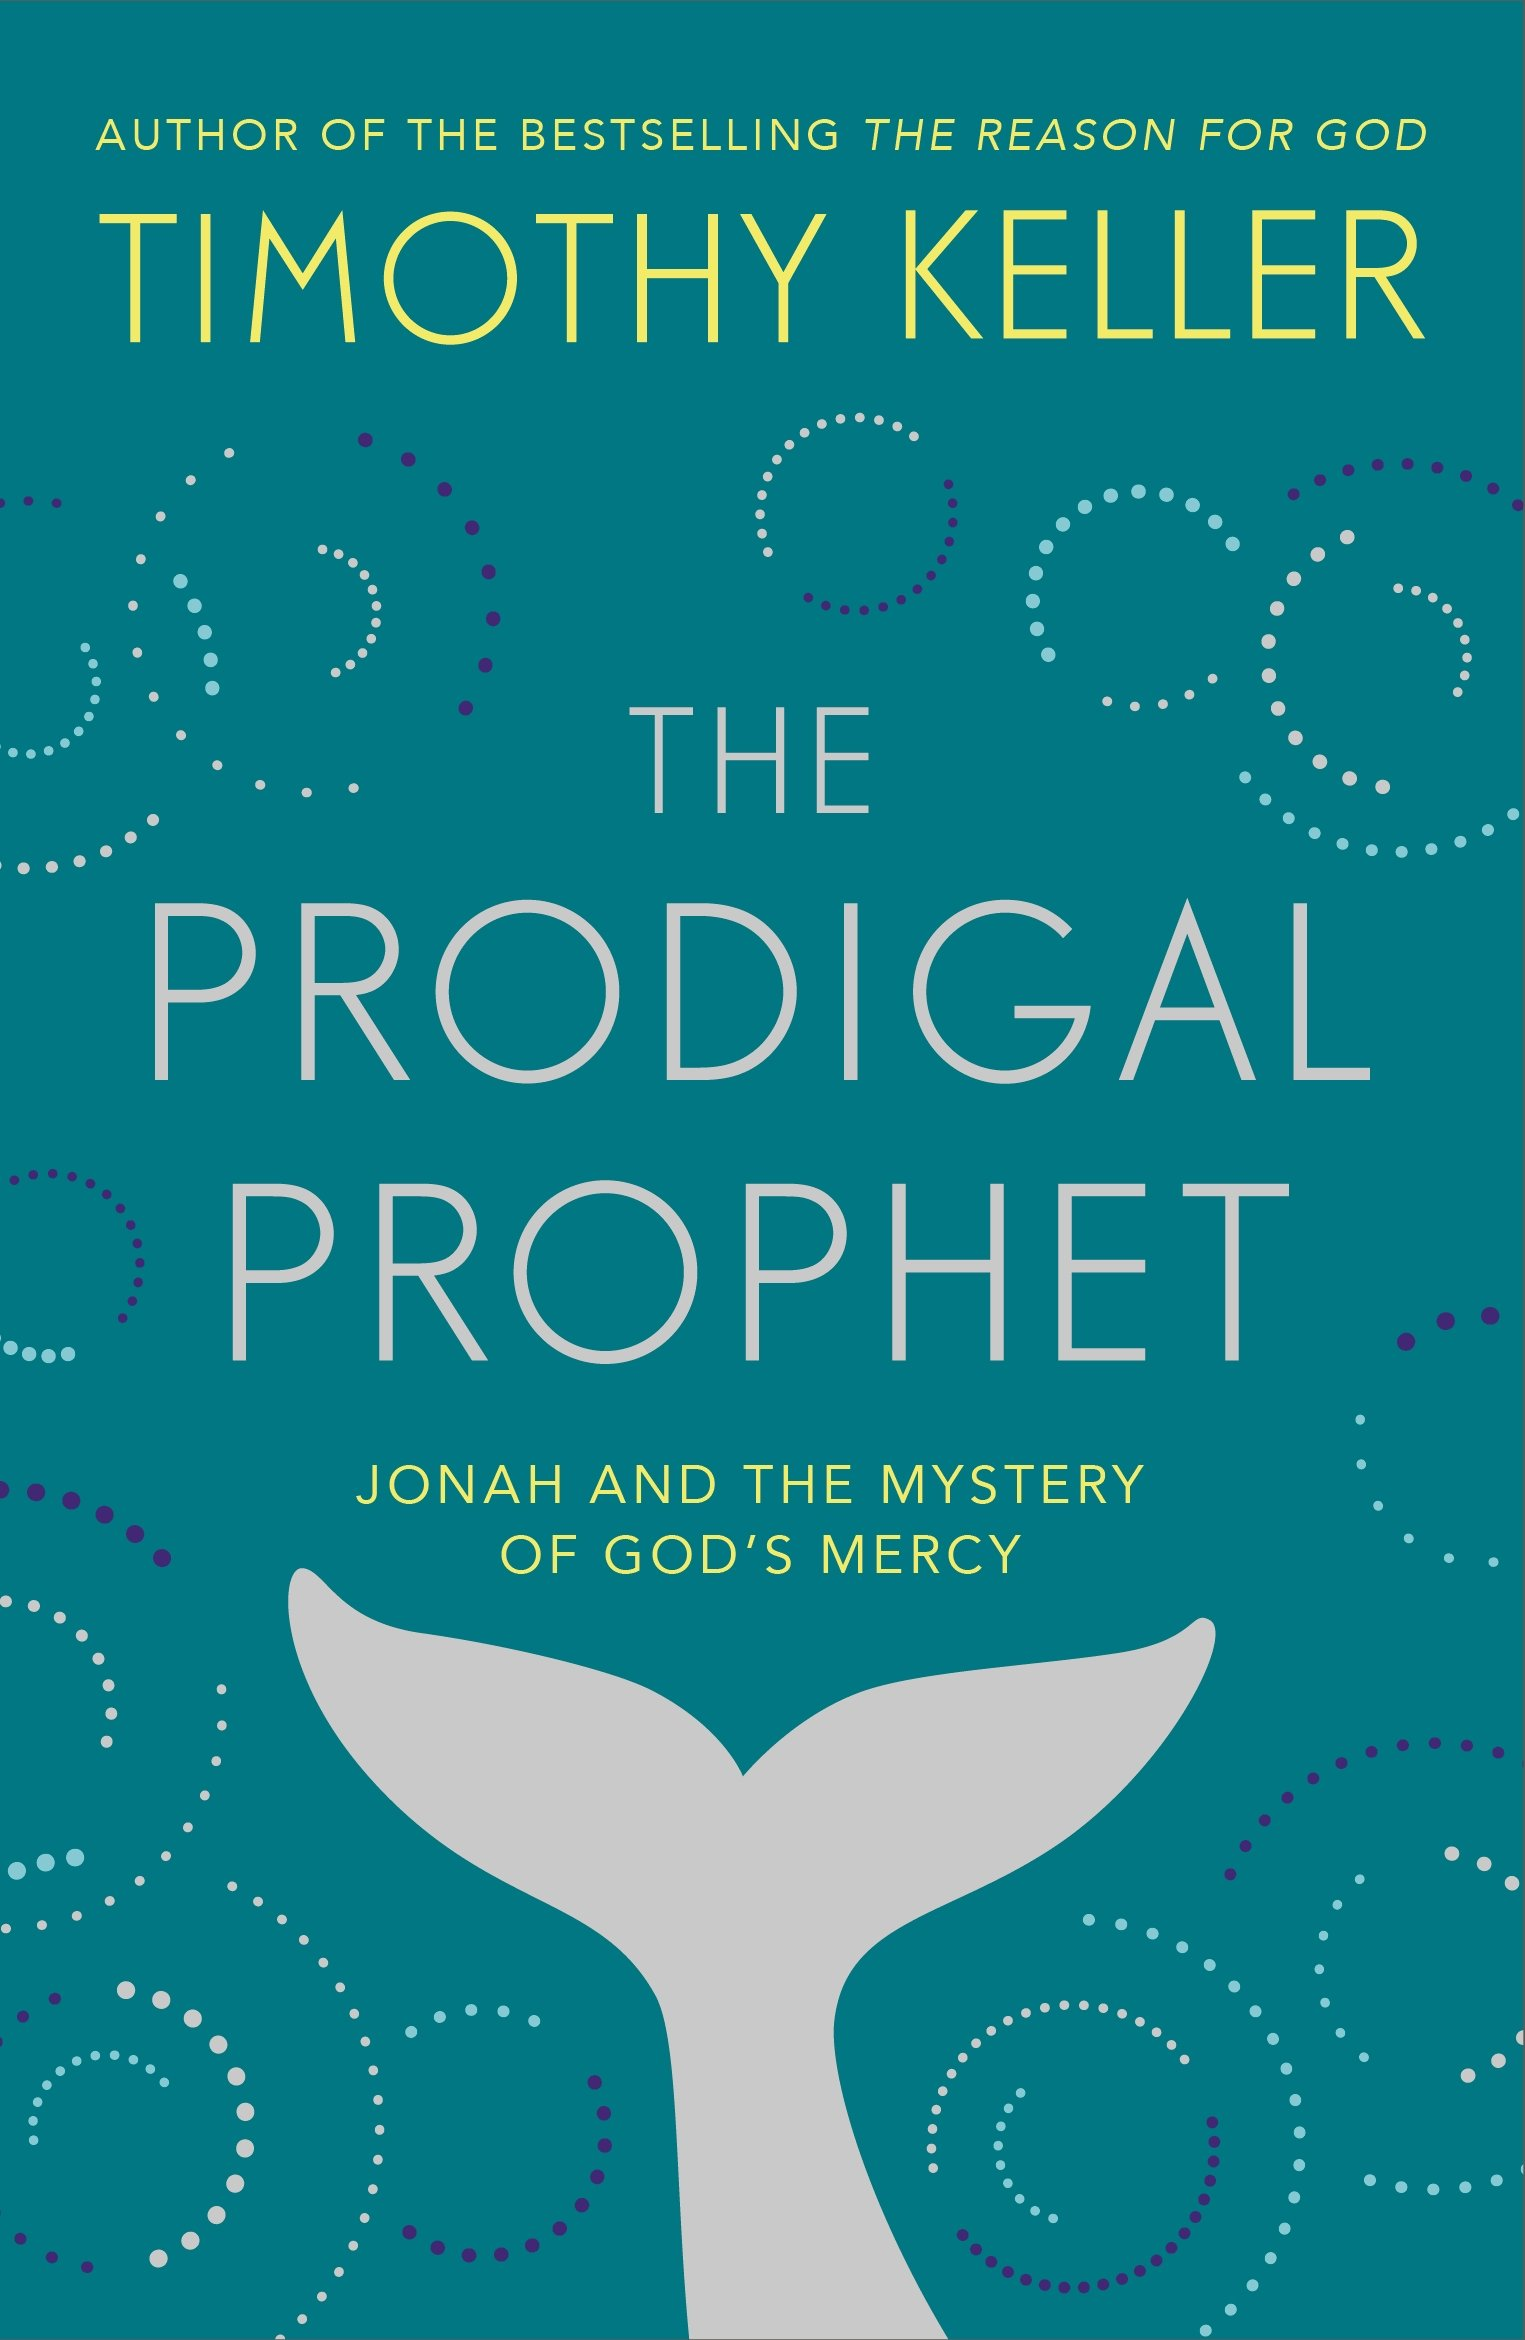 The Prodigal Prophet  Jonah And The Mystery Of God's Mercy